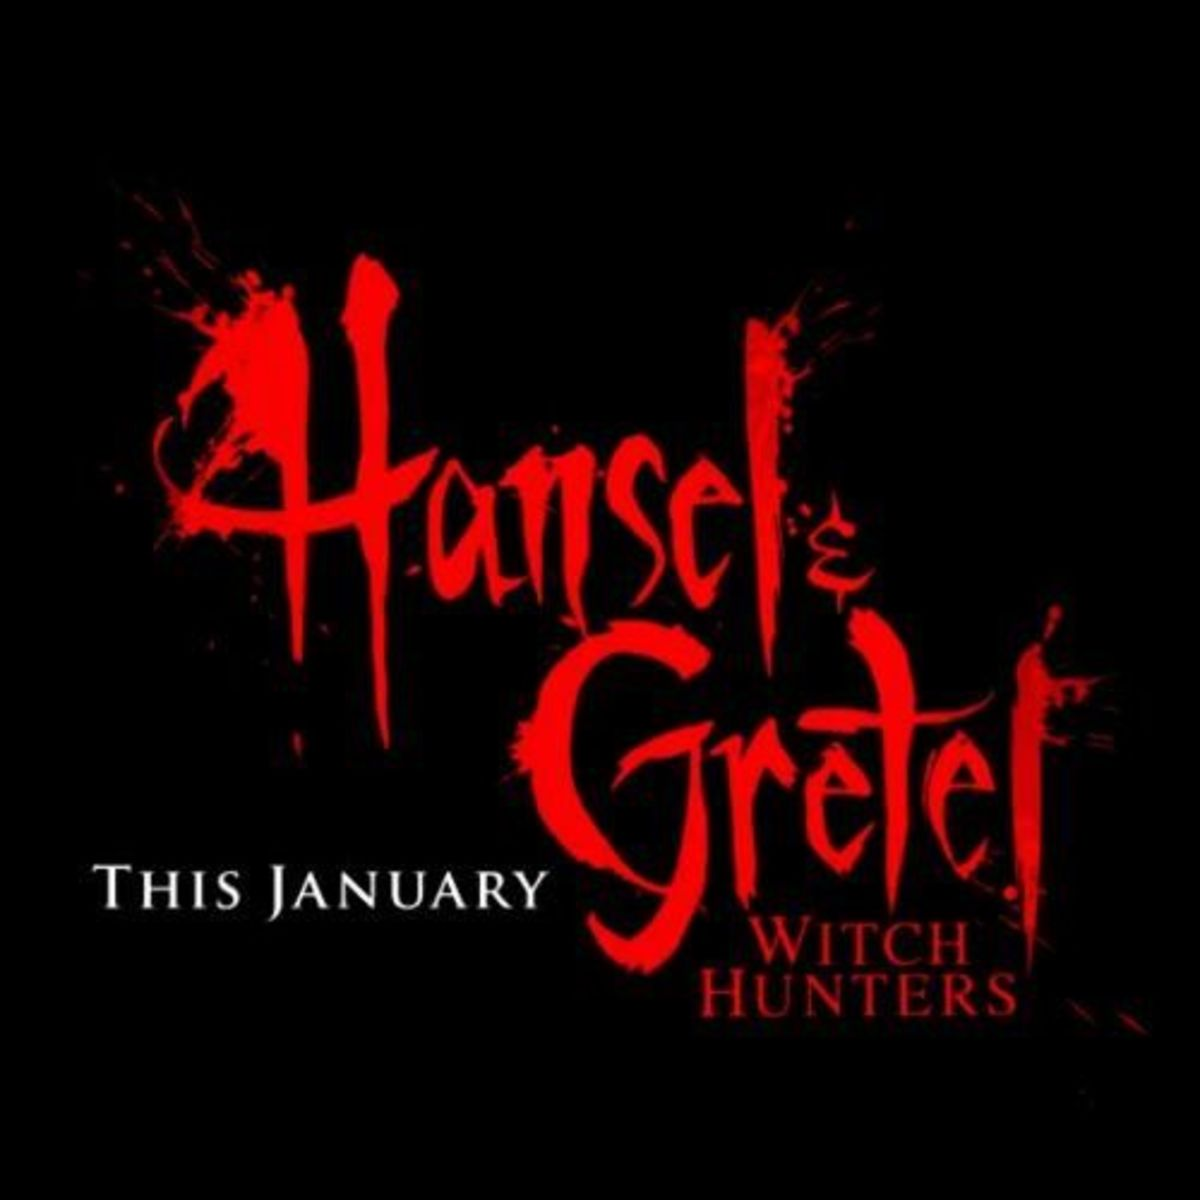 Image from Hansel and Gretel on Facebook